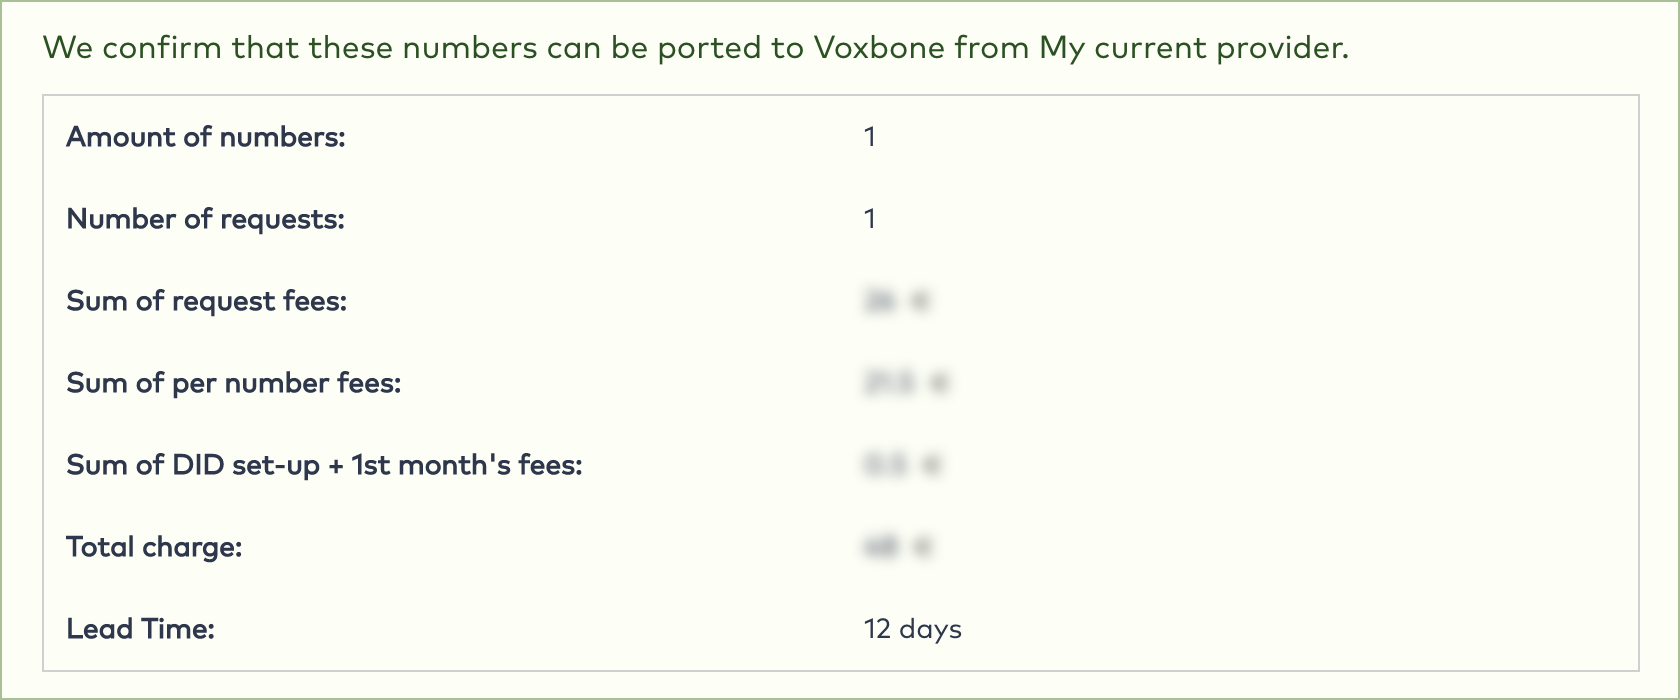 Porting to Voxbone, step 3